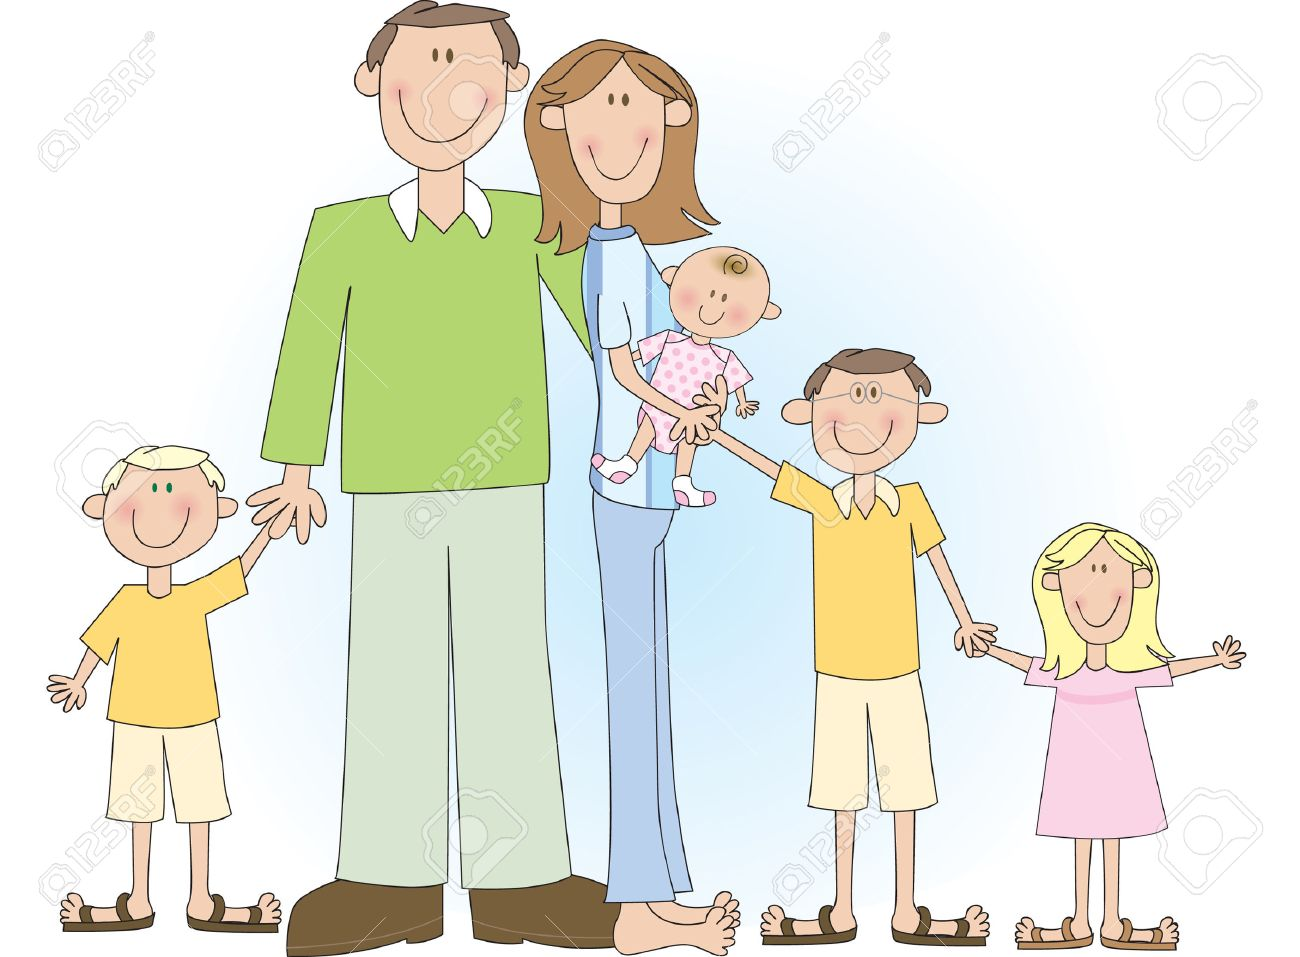 A cartoon vector drawing of a large family including father, mother, two boys and two girls. Stock Vector - 3570738